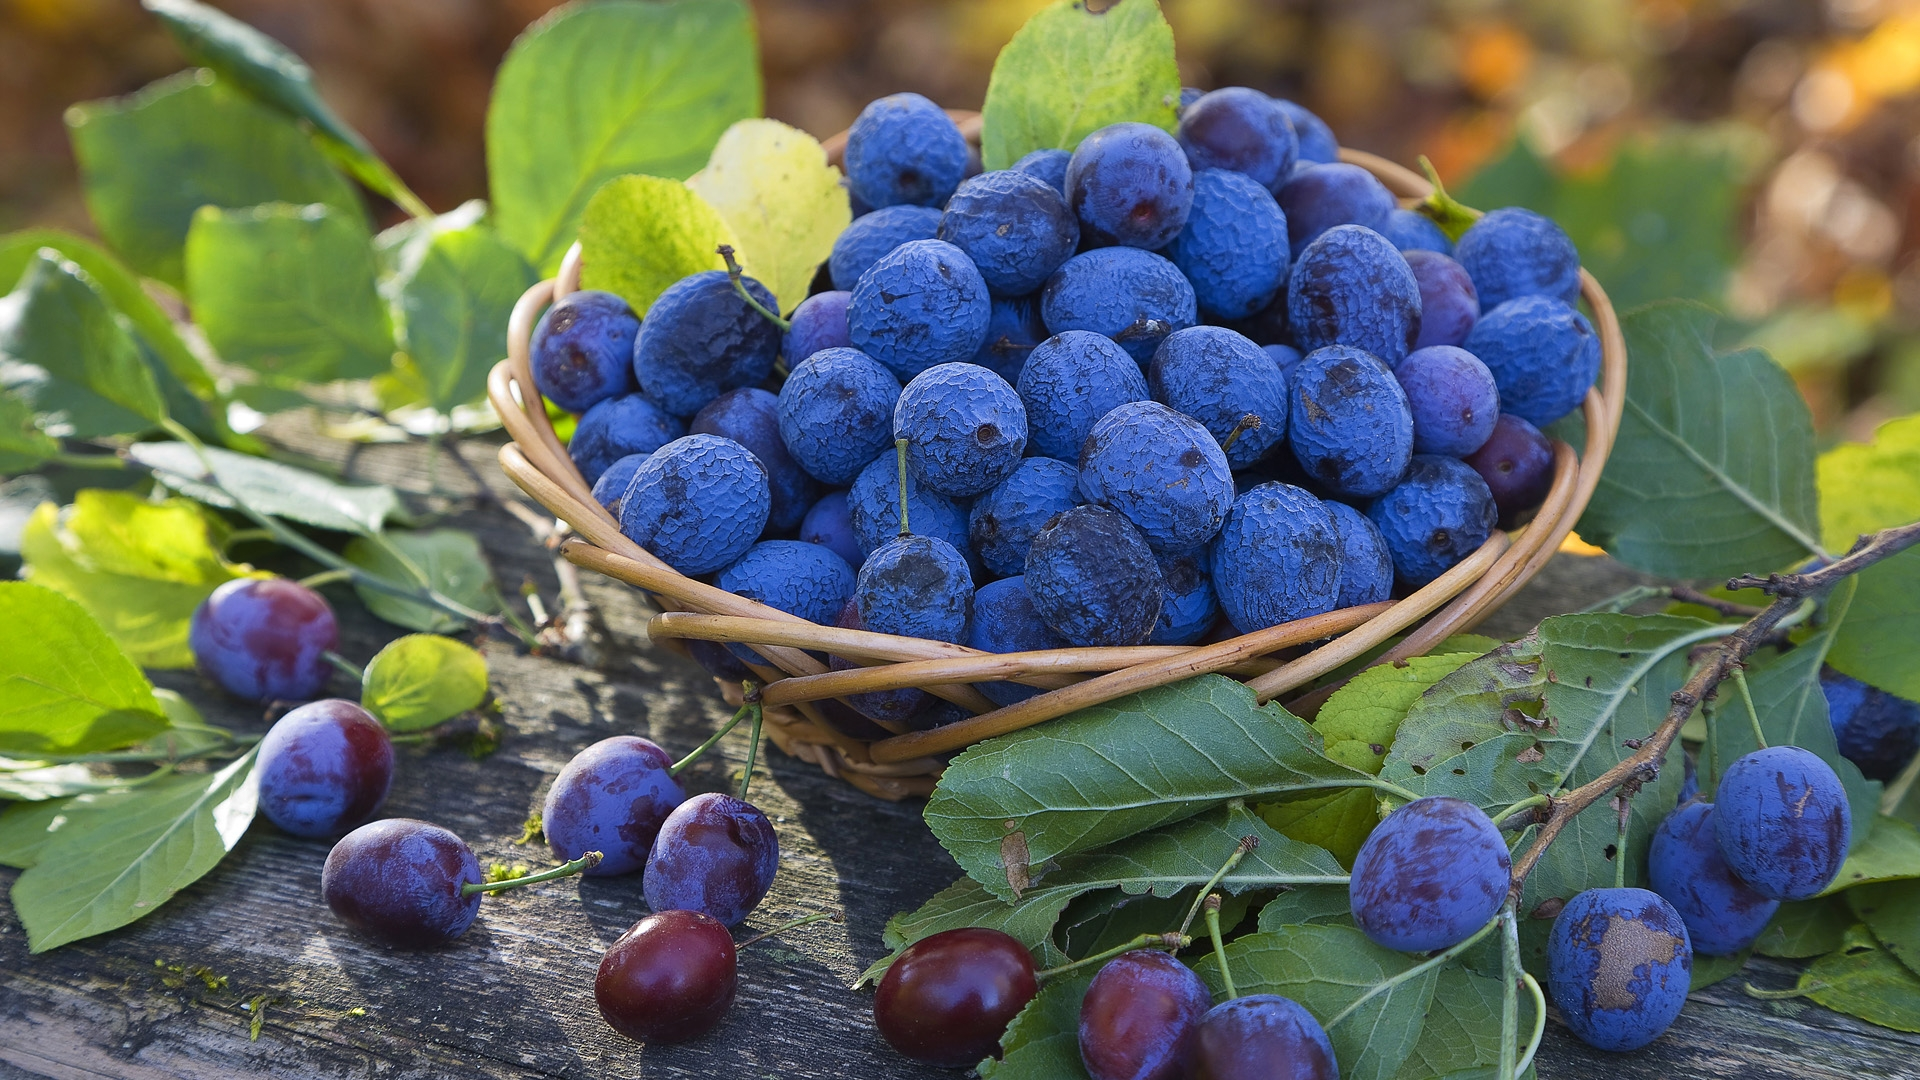 Blueberry Pictures